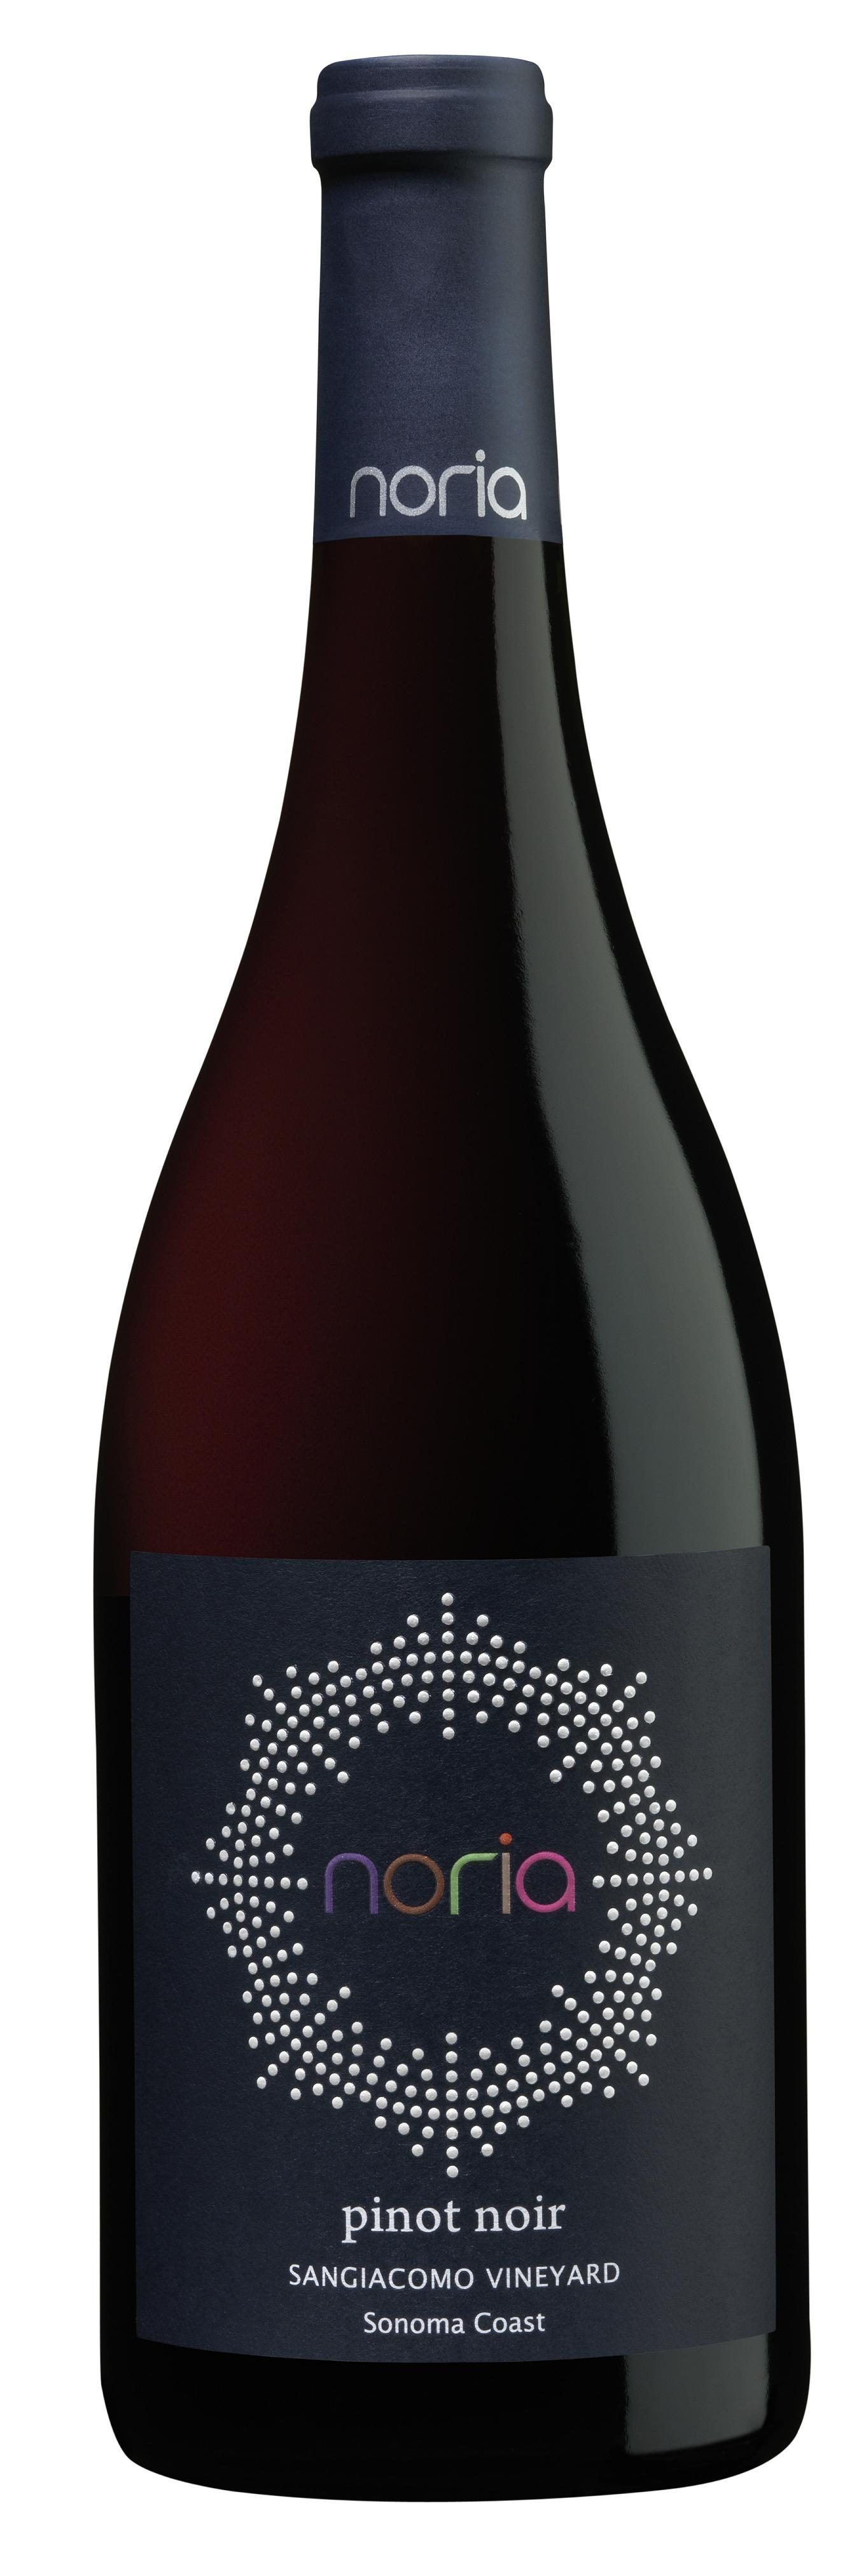 Noria Pinot Noir bottle 001